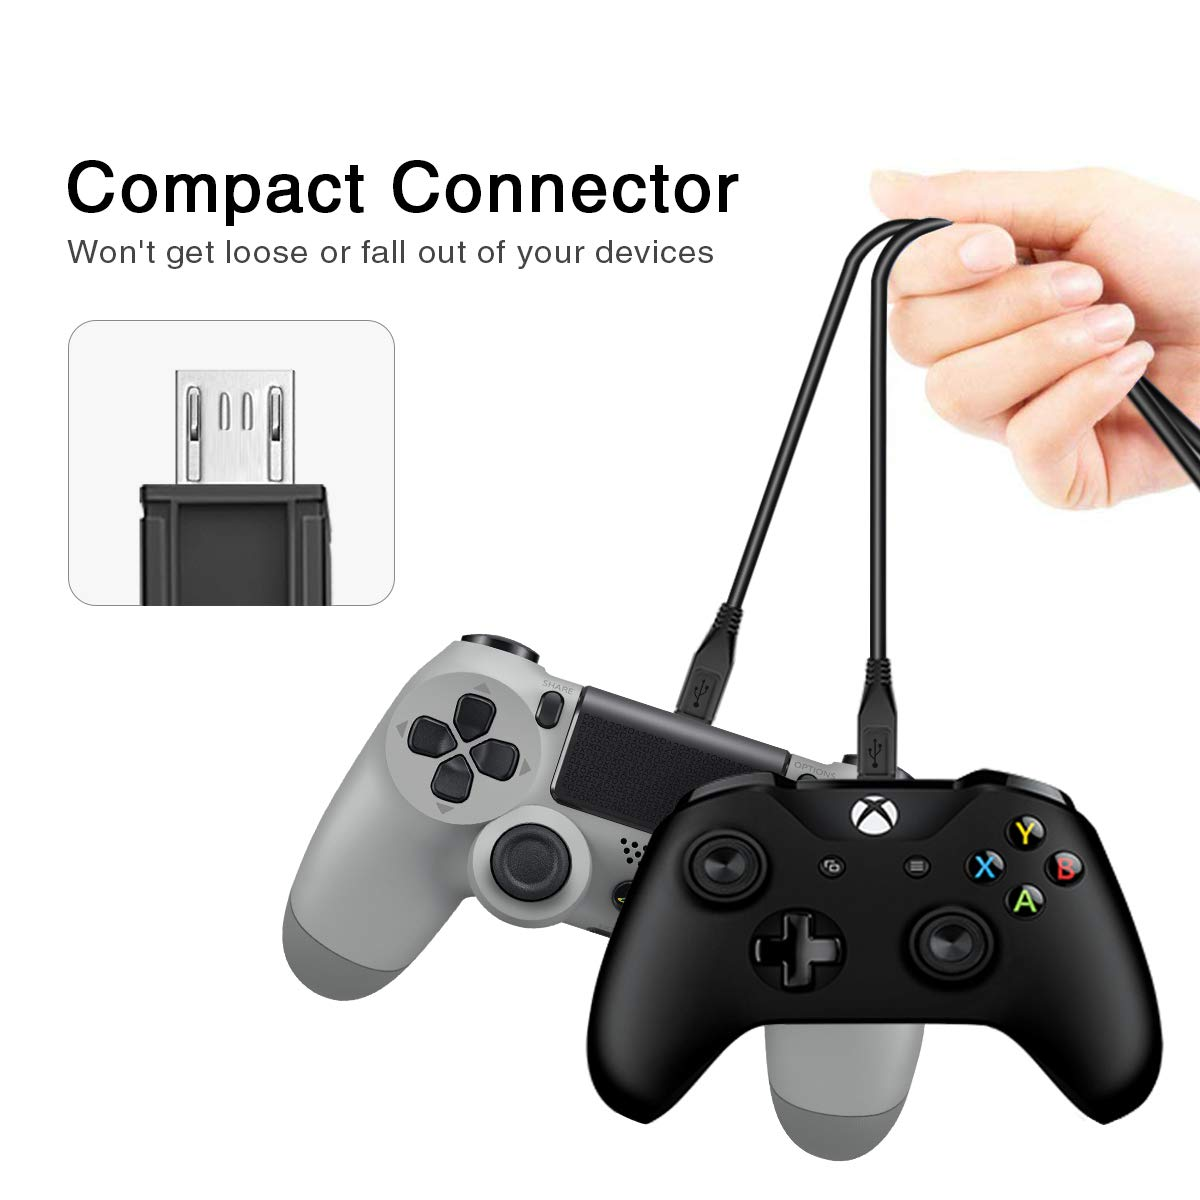 Kimiangel PS4 Charging Cable 2 Pack 5.9ft//1.8M Durable USB 2.0 to Micro USB Fast Charger Sync Cord for PS4 Slim//Pro Controller//Xbox One S//X Controller//Xbox One//Playstation 4//DualShock 4